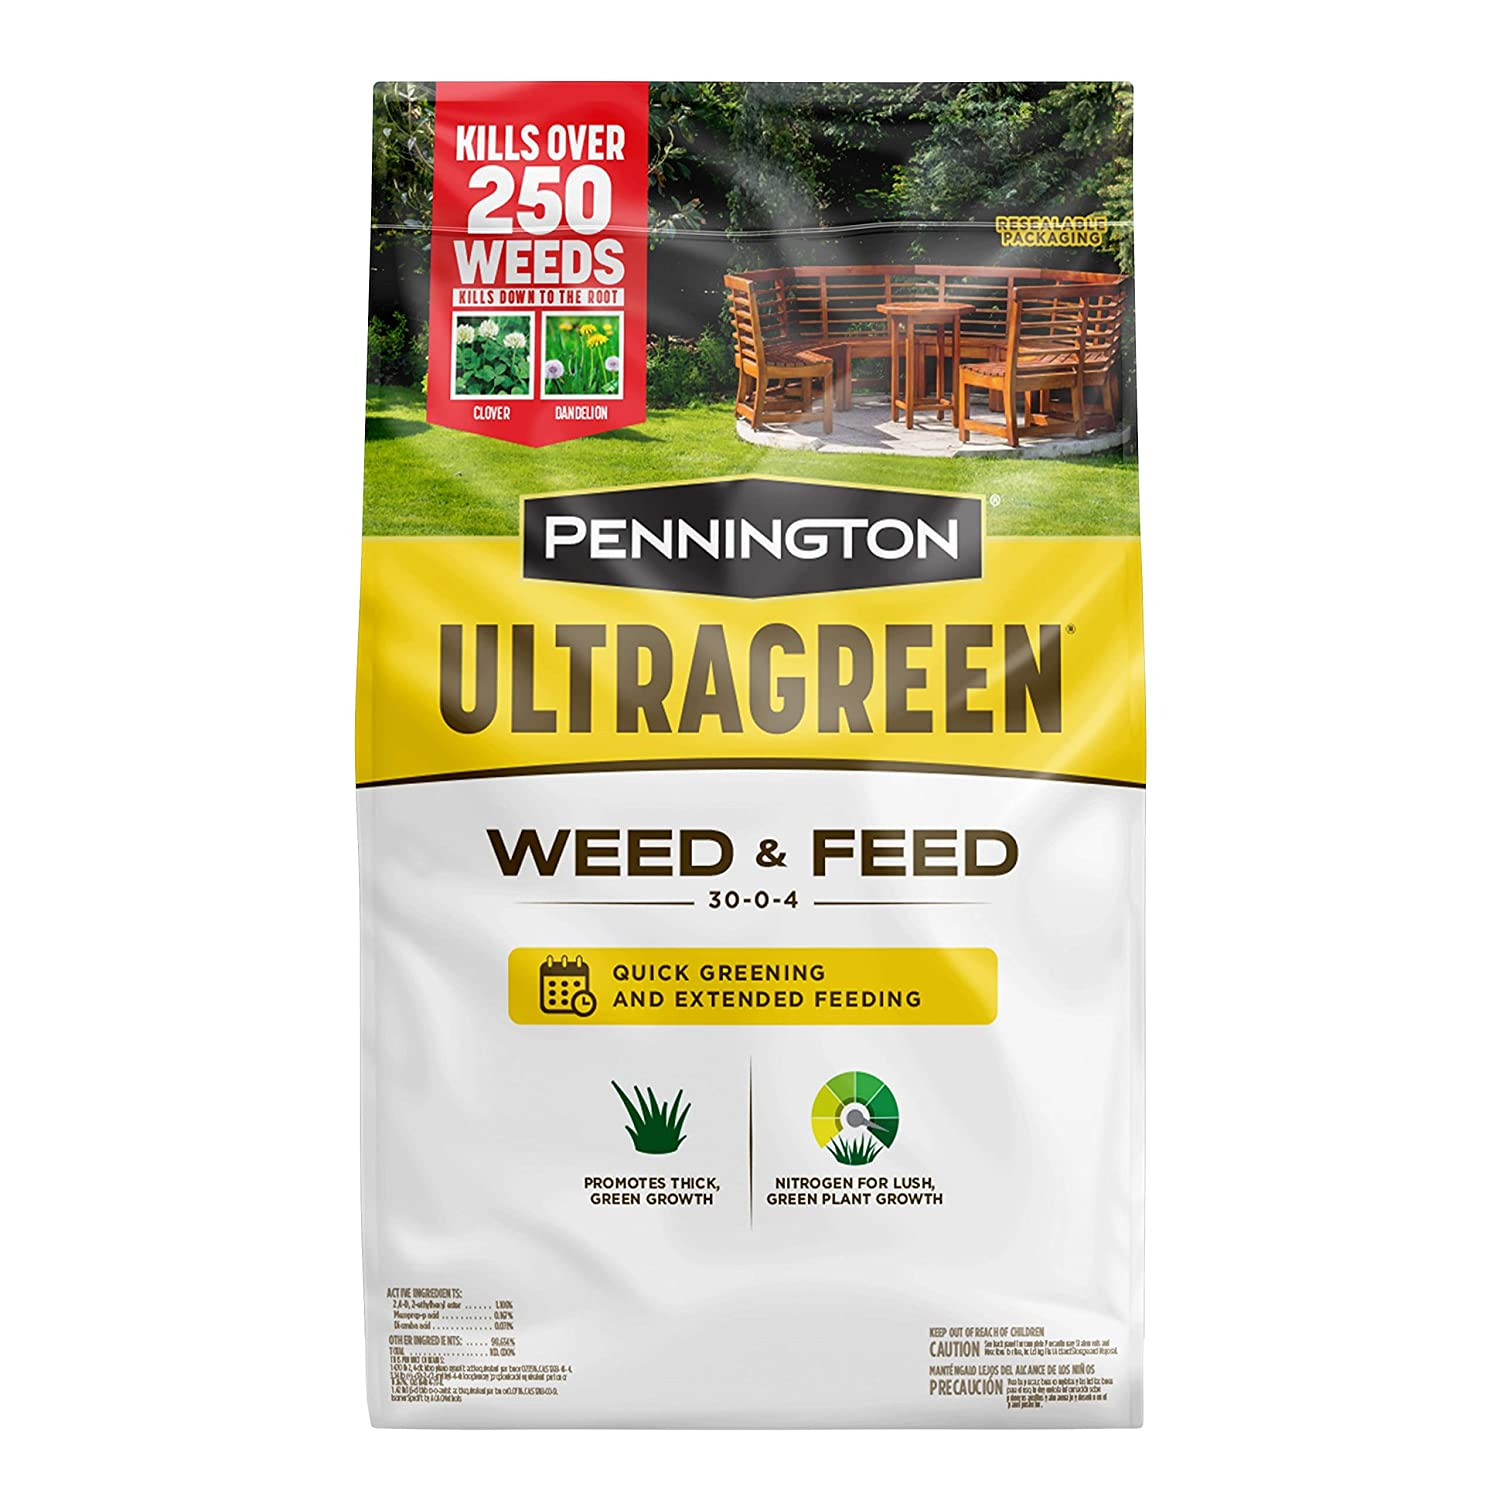 Pennington 100536600 UltraGreen Weed & Feed Lawn Fertilizer, 12.5 lb, Covers 5000 sq'